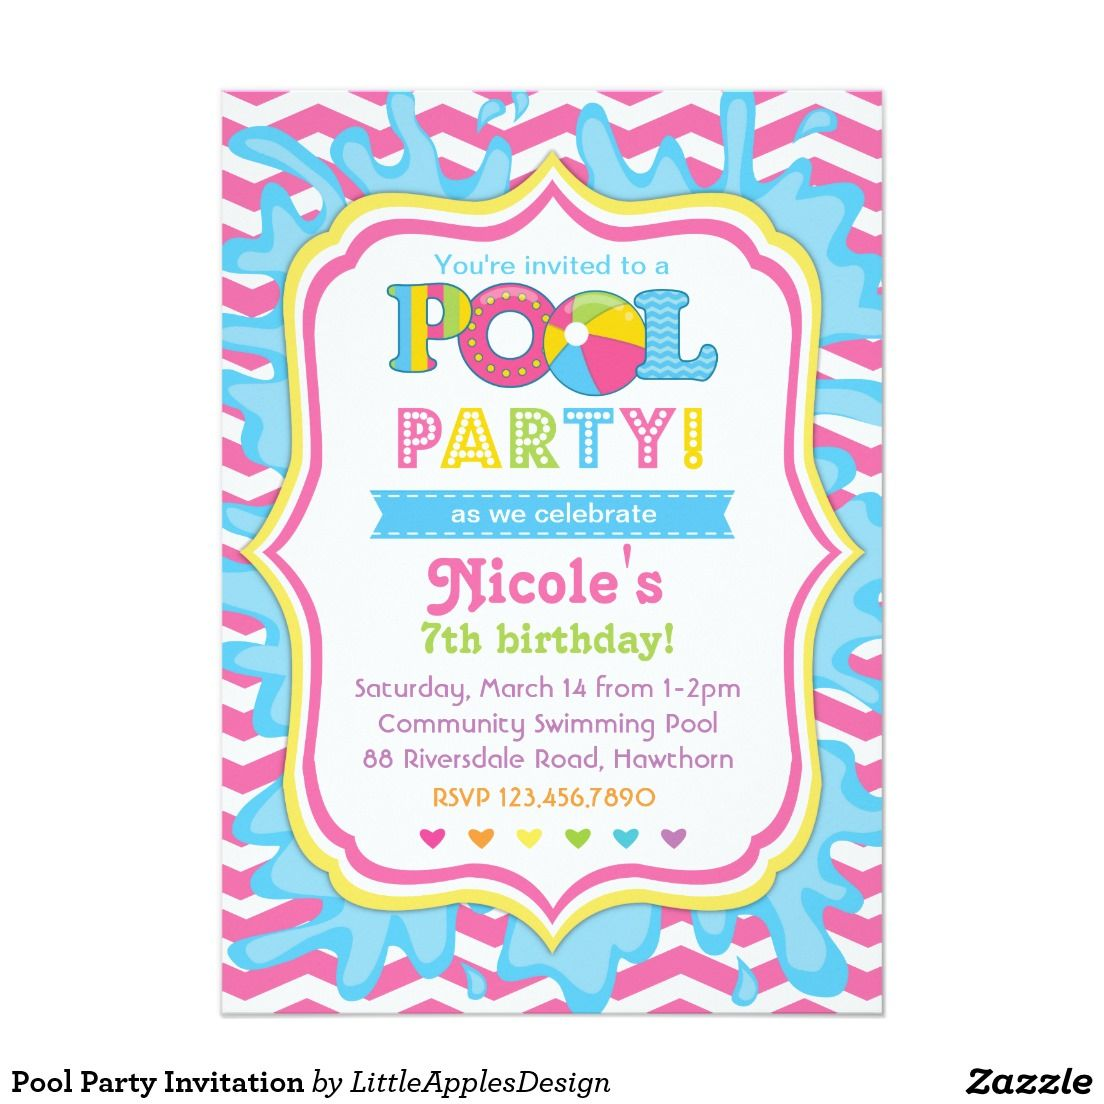 Cute Pastel Colored Pool Party Invitations For Girls! Love